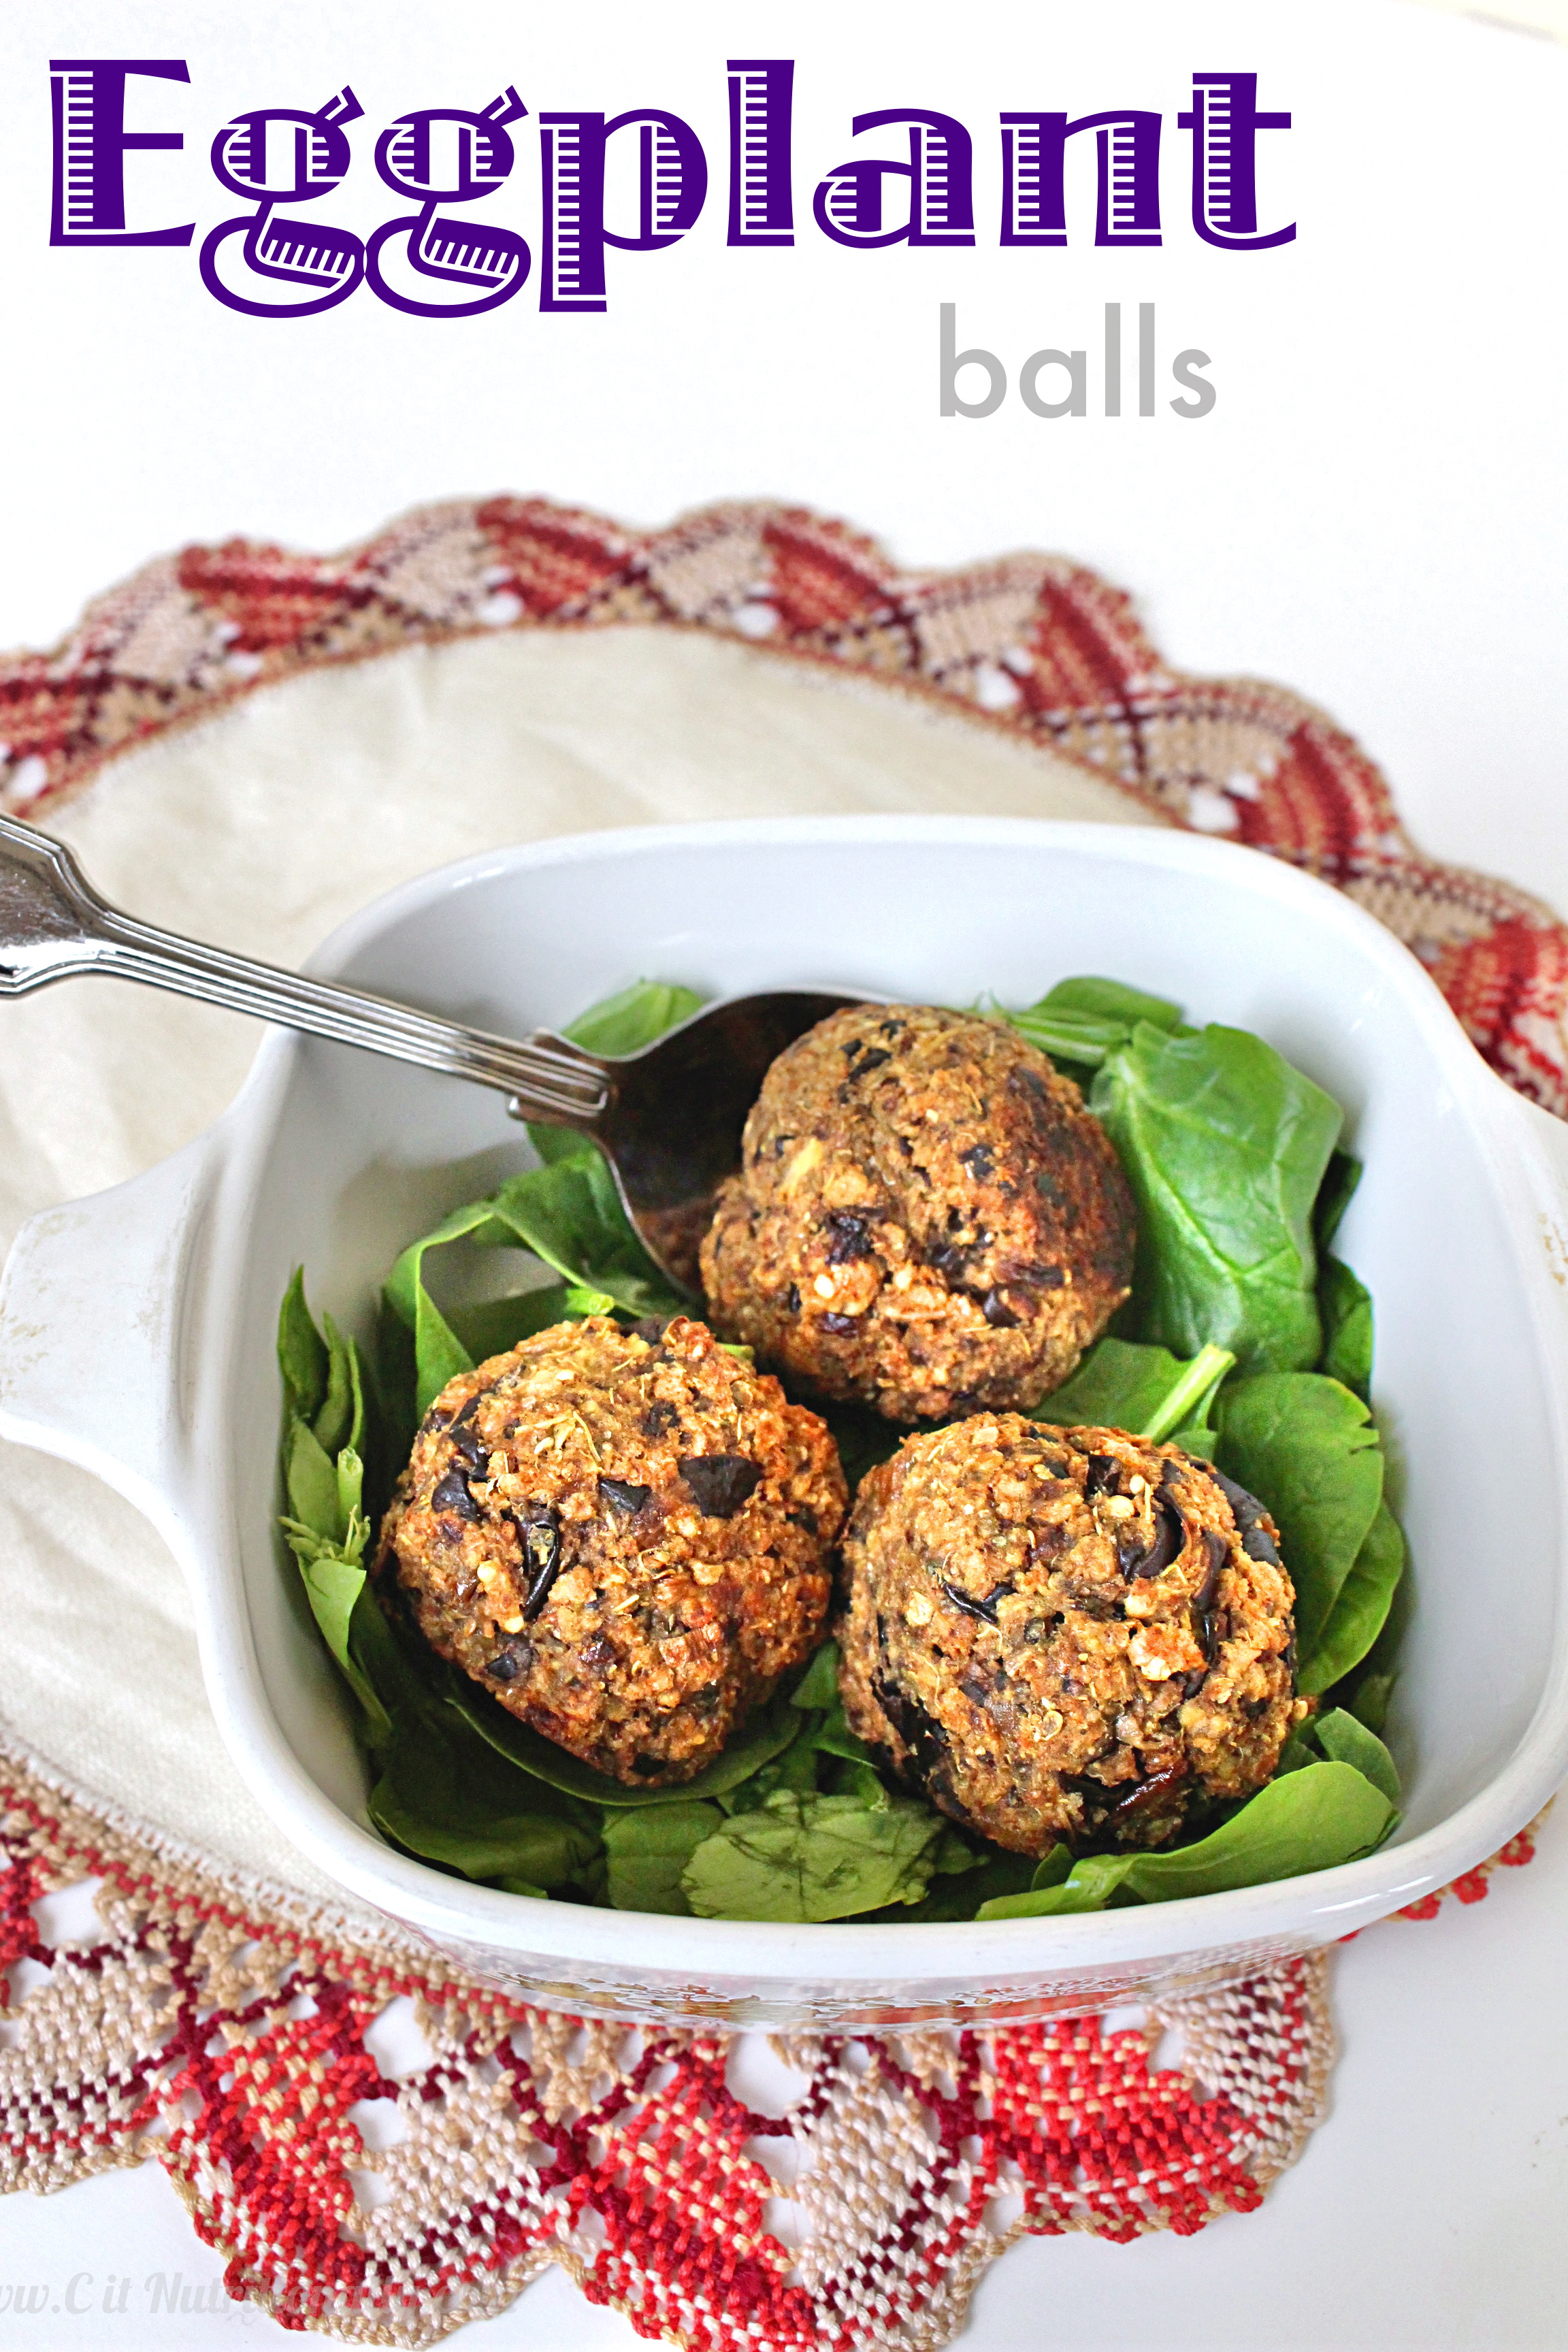 4 ingredient vegan eggplant balls c it nutritionally 4 ingredient vegan eggplant balls c it nutritionally forumfinder Choice Image